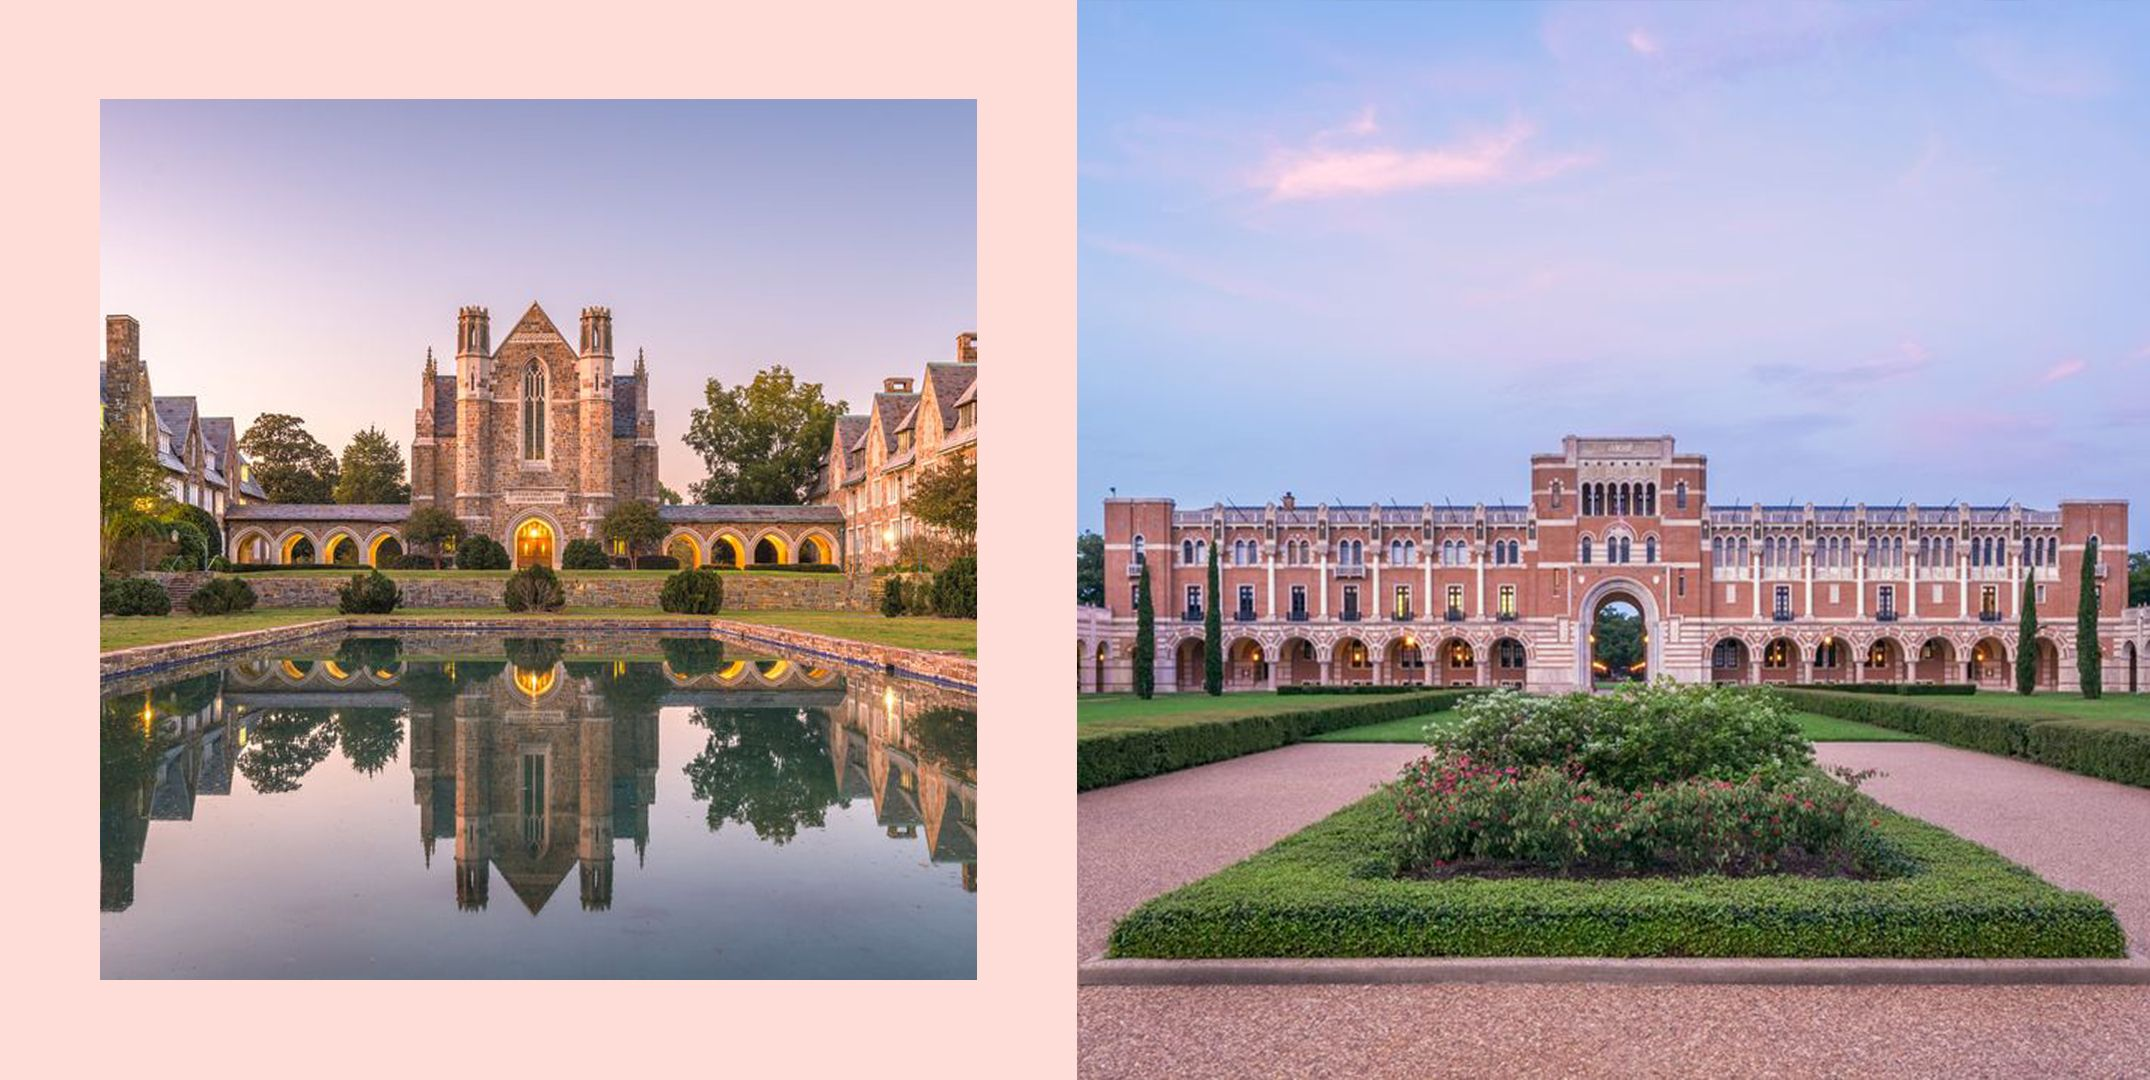 Please Join Me in Ogling These Pics of the Most Beautiful College Campuses